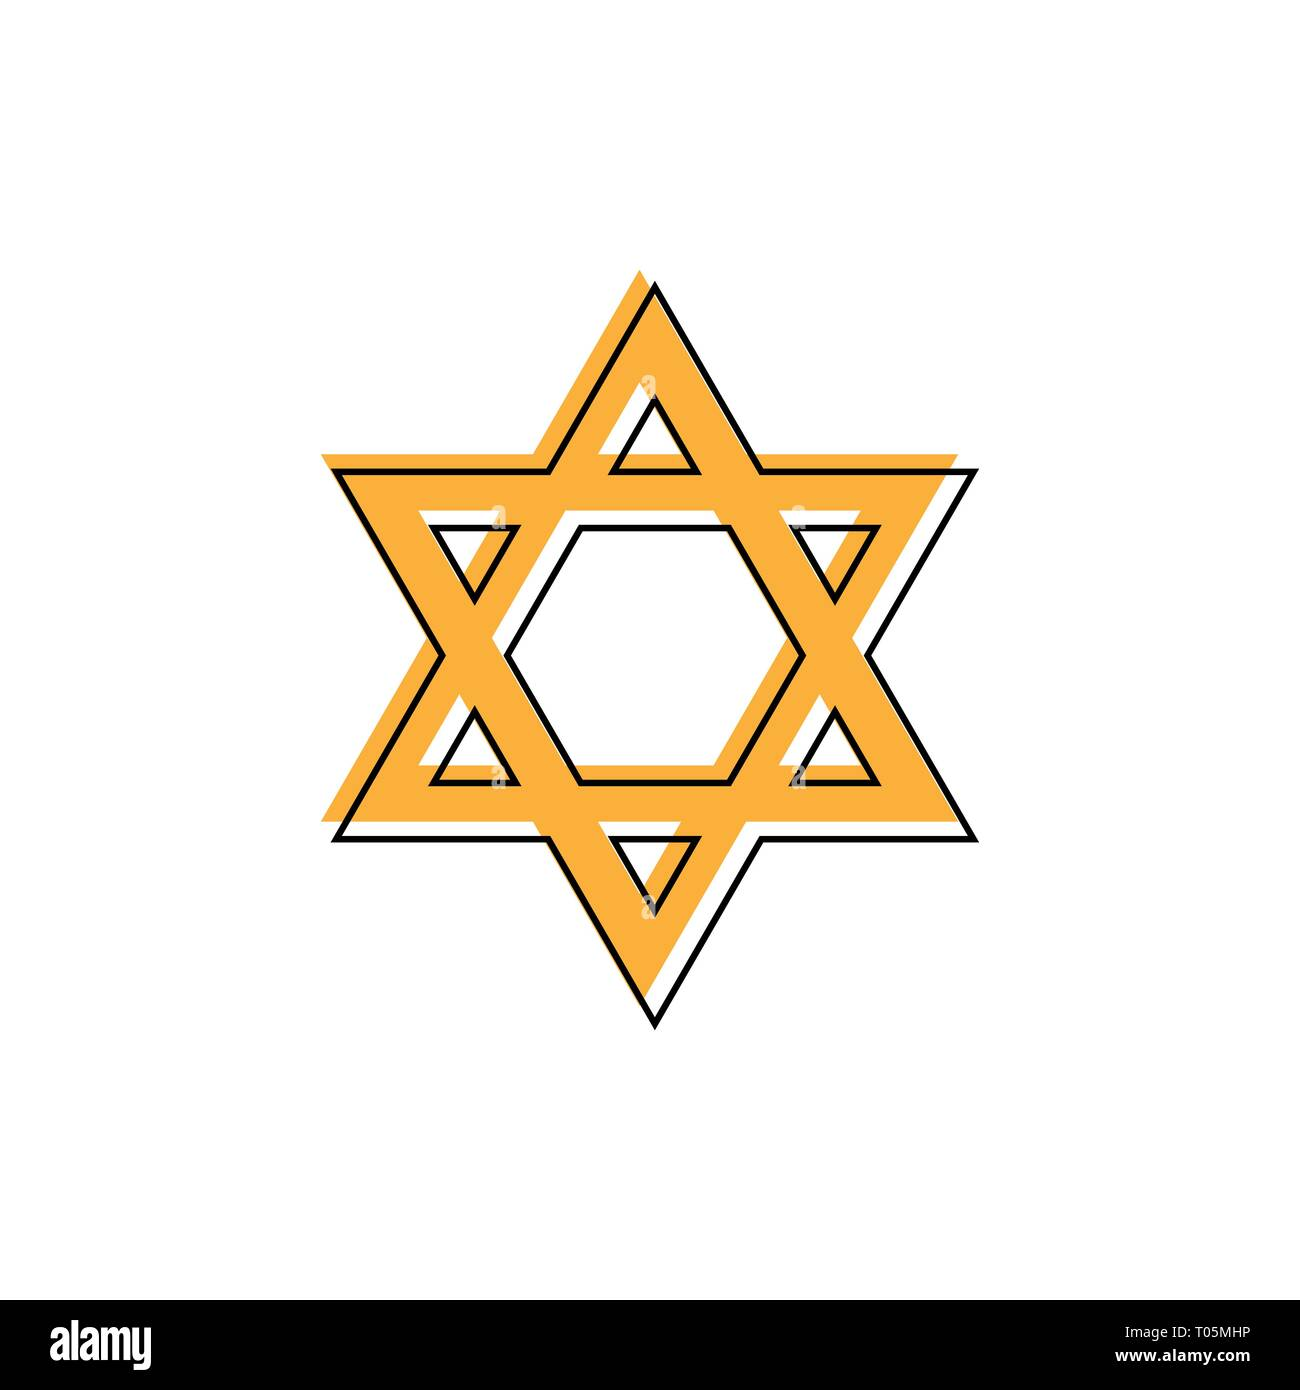 Star of David. Hexagram sign. Symbol of Jewish identity and Judaism. Simple flat orange illustration - Stock Vector